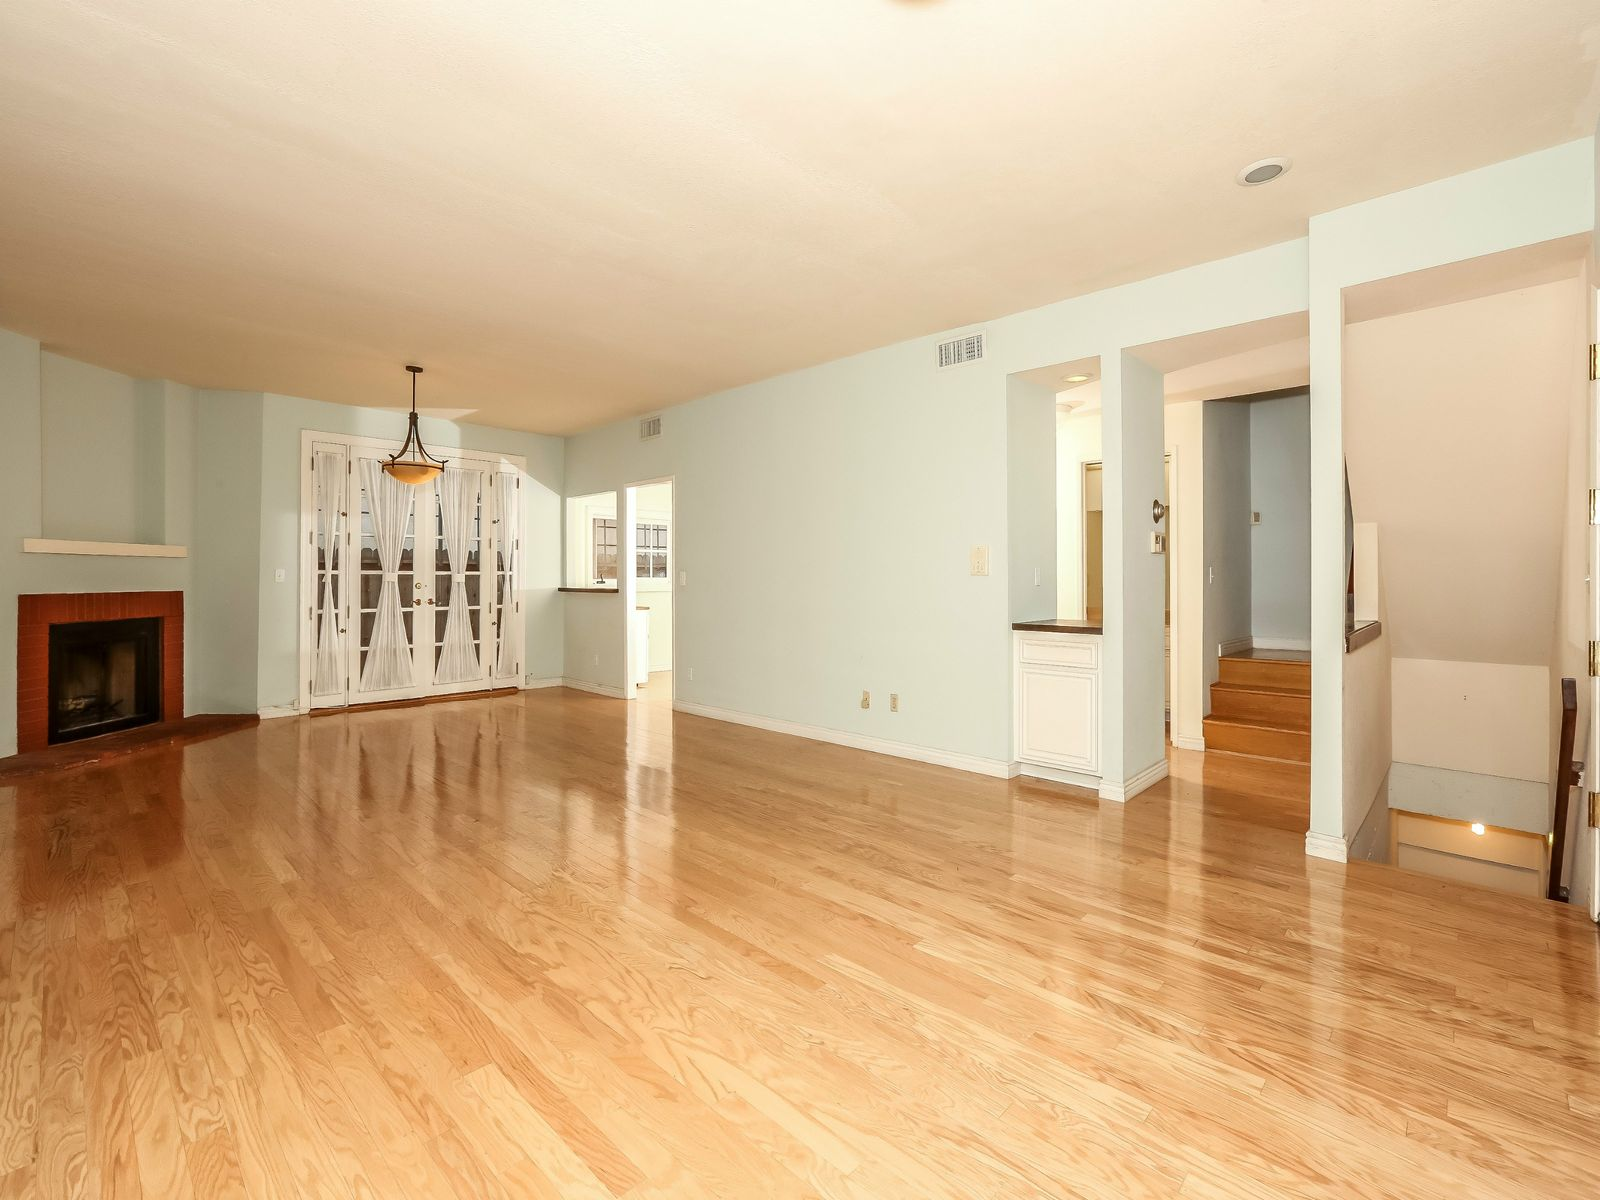 Inviting Townhome in a four unit Bldg.